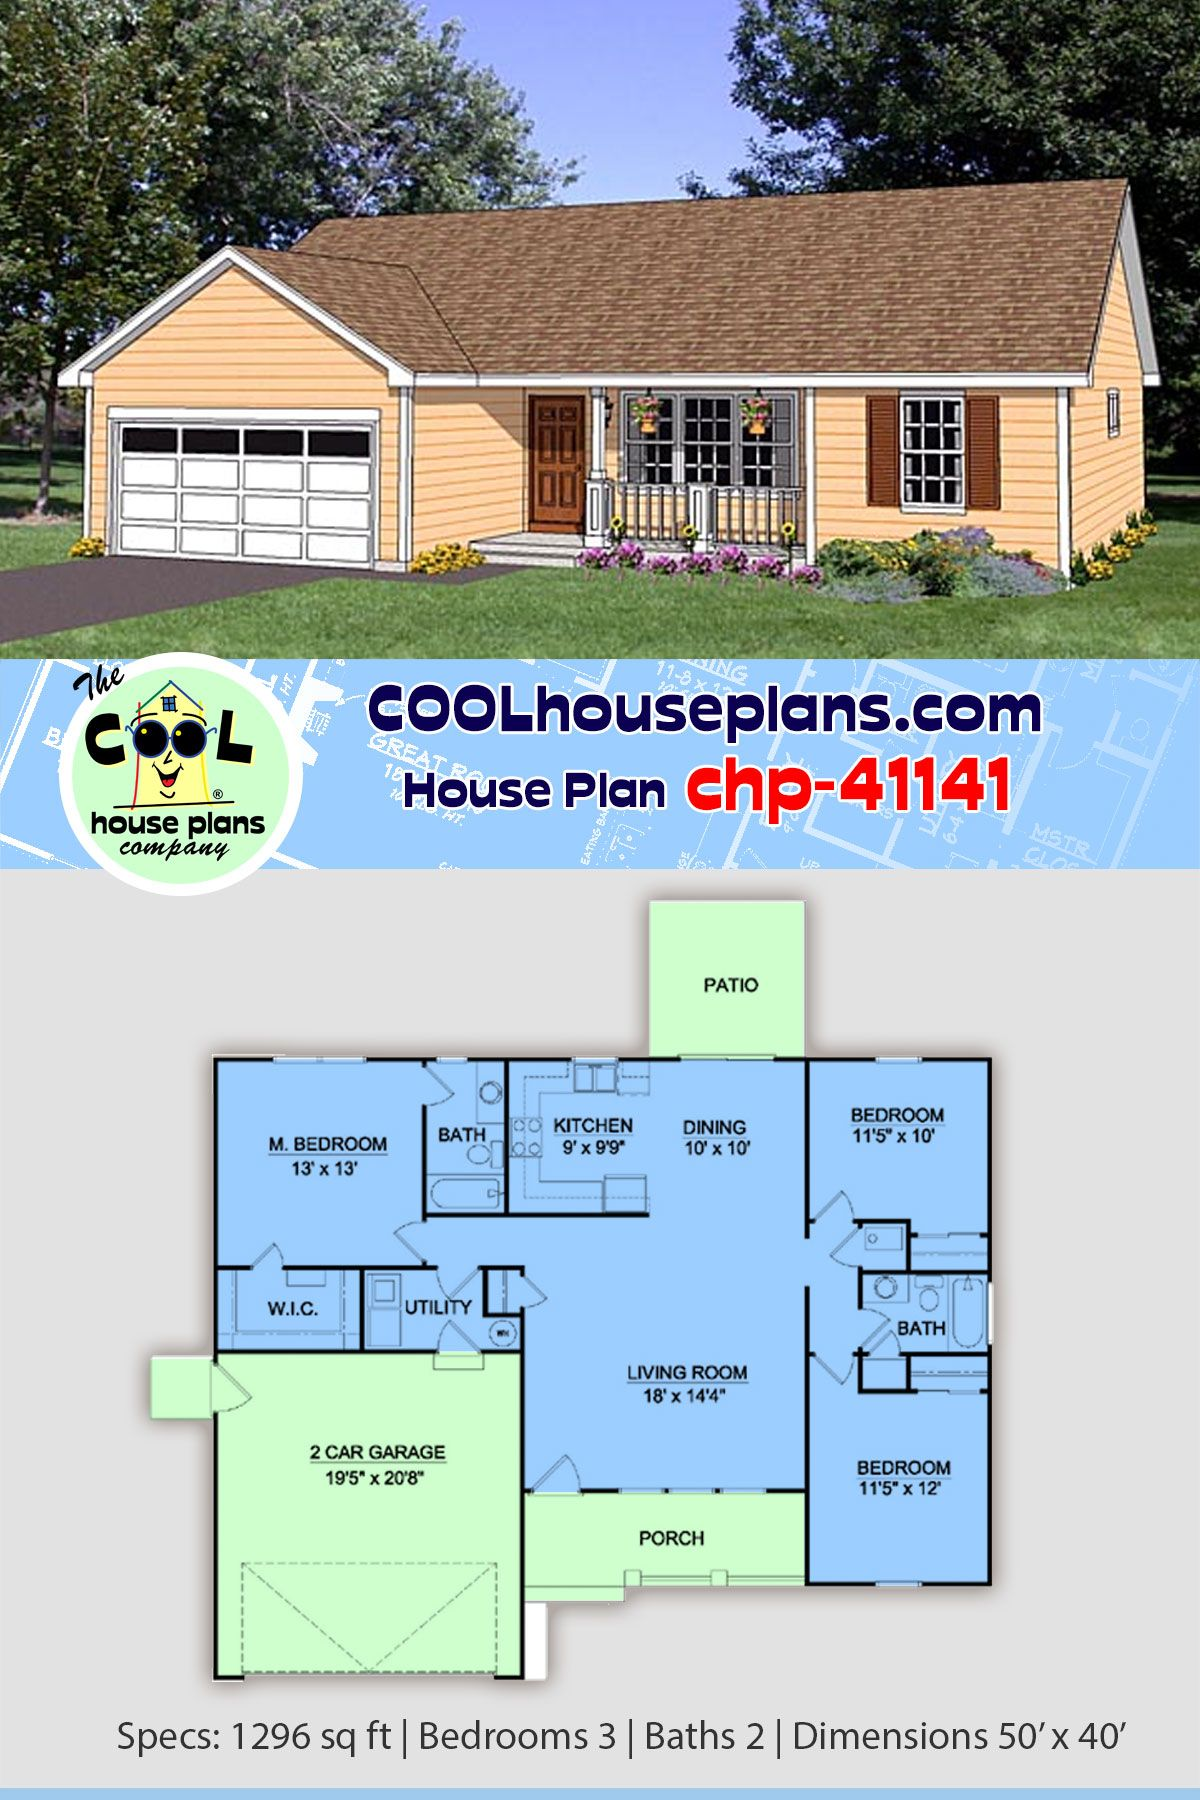 Simple House Plan Affordable Home Floor Plan In A Basic Ranch Design 3 X 2 Floor Plan Simple Ranch House Plans Ranch House Plans House Plans